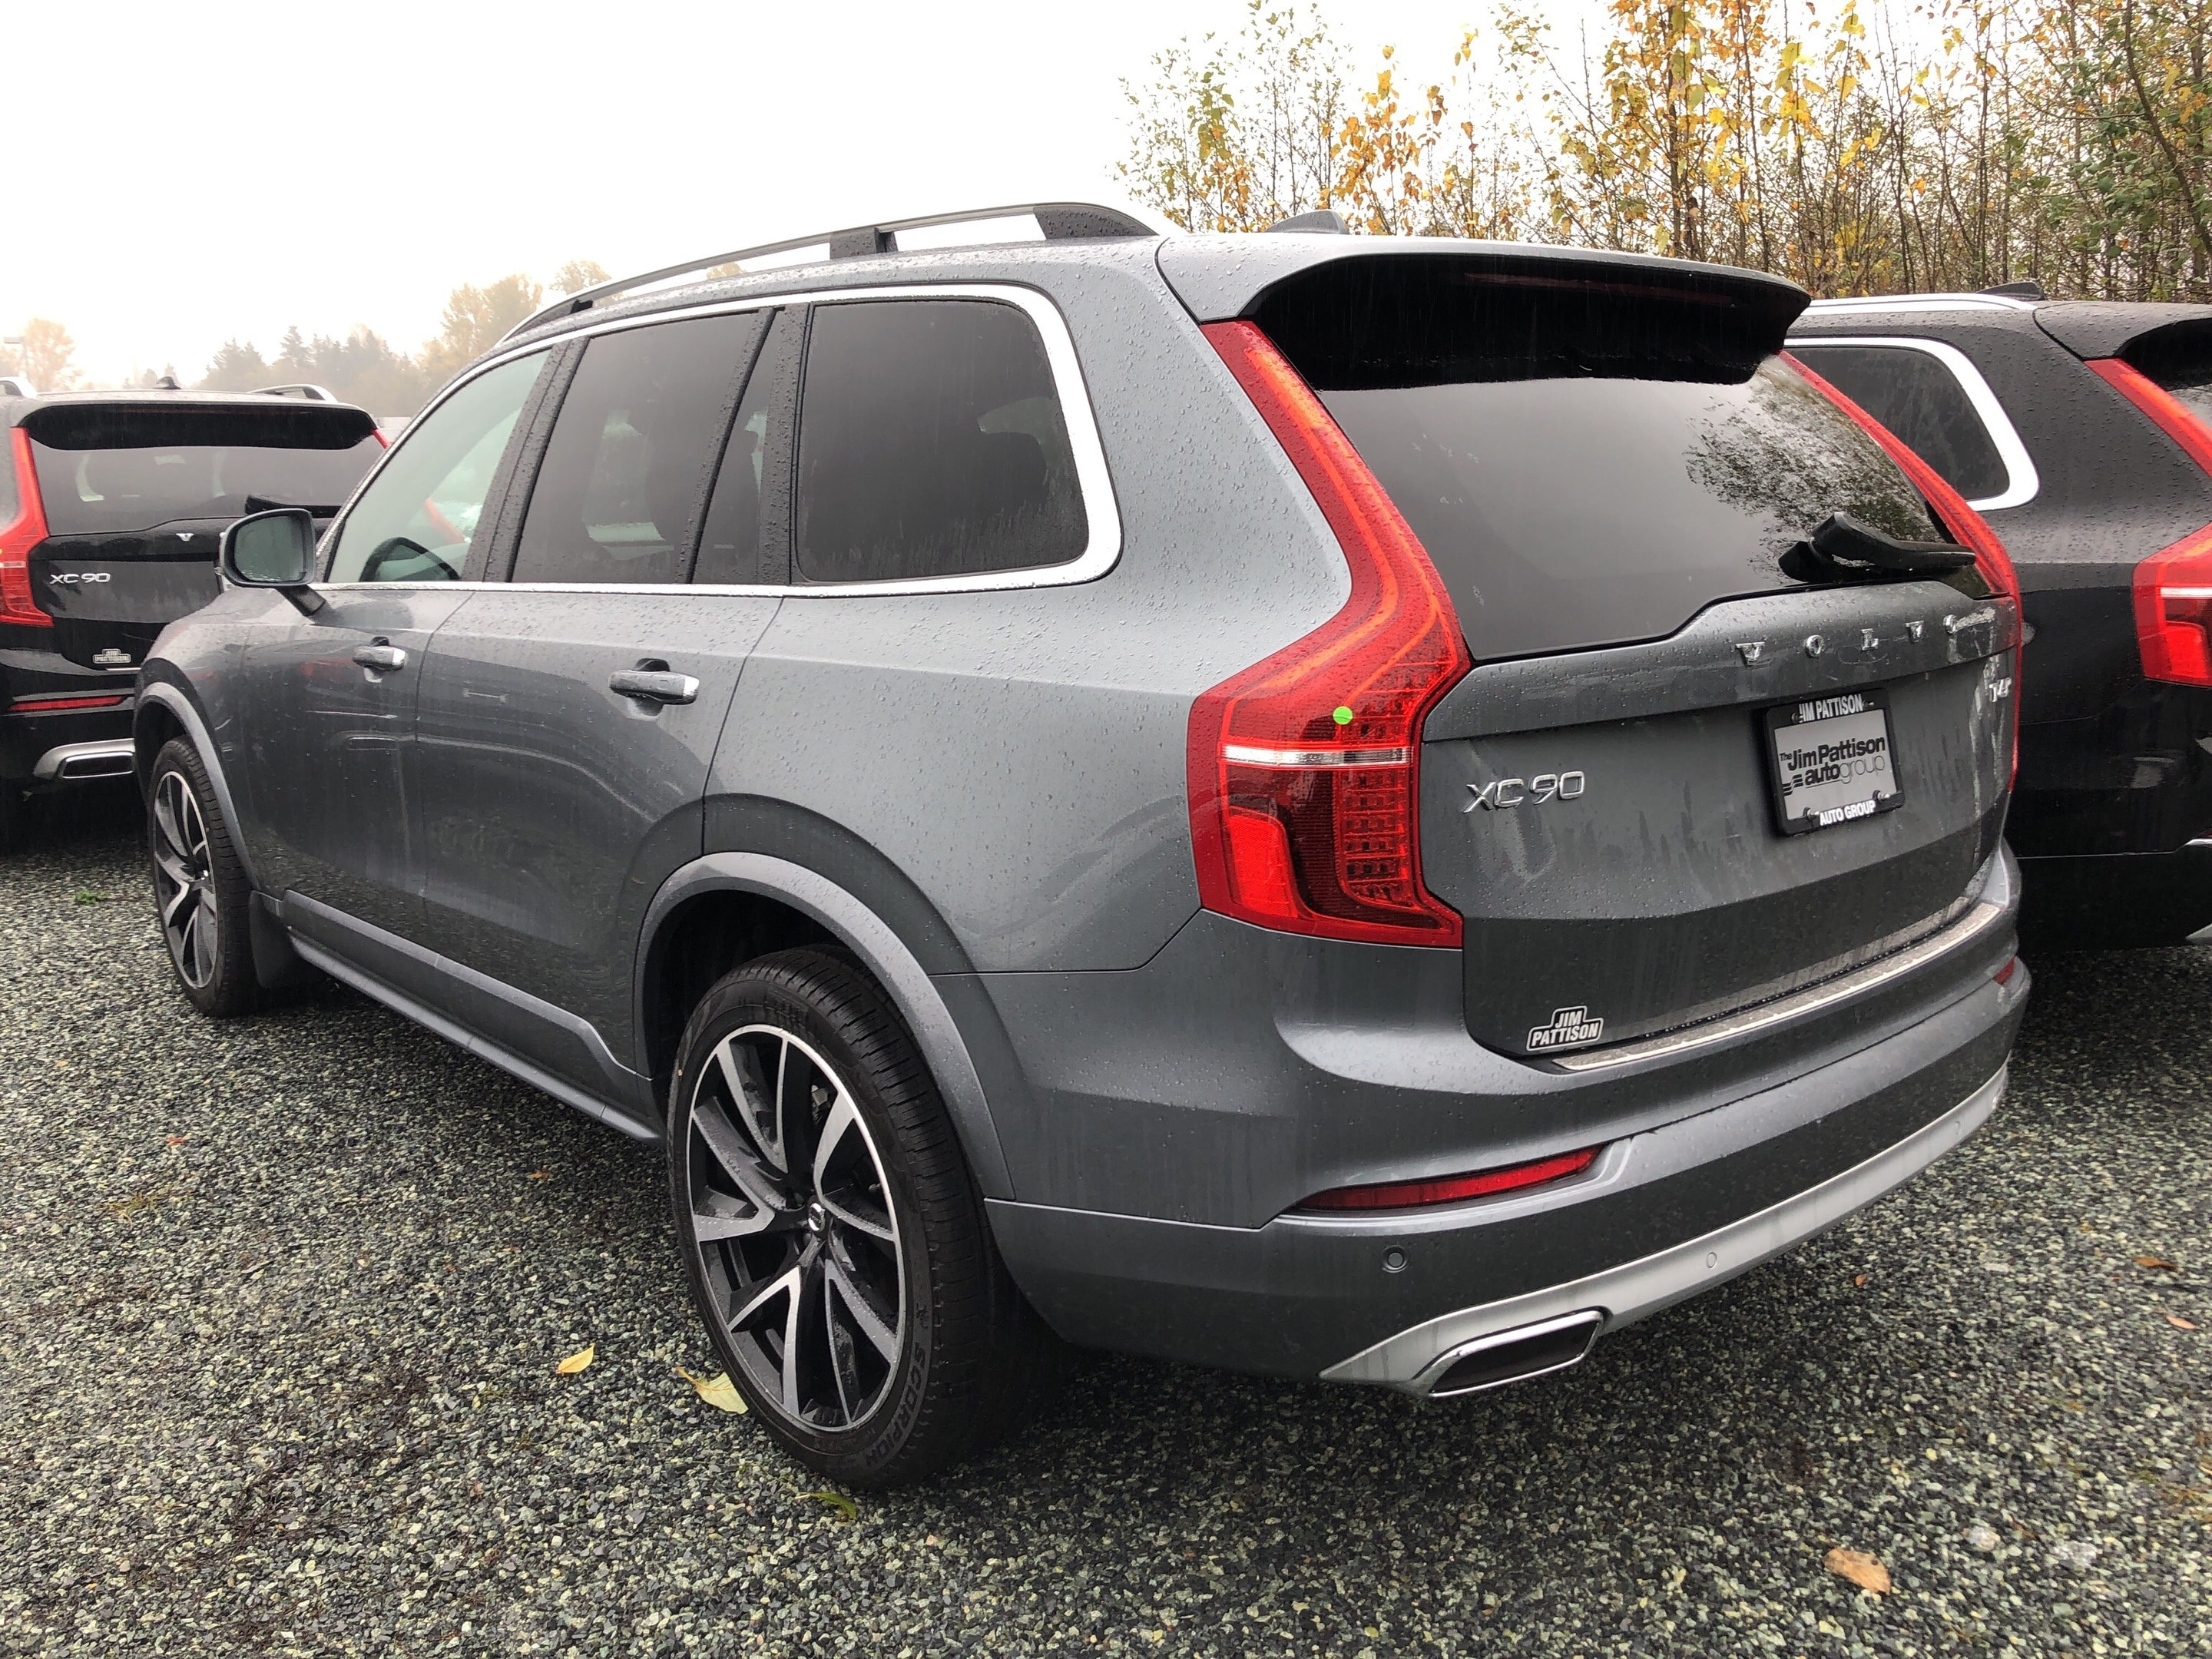 2019 Volvo XC90 T6 AWD Momentum DEMO SALE ON NOW! SUV